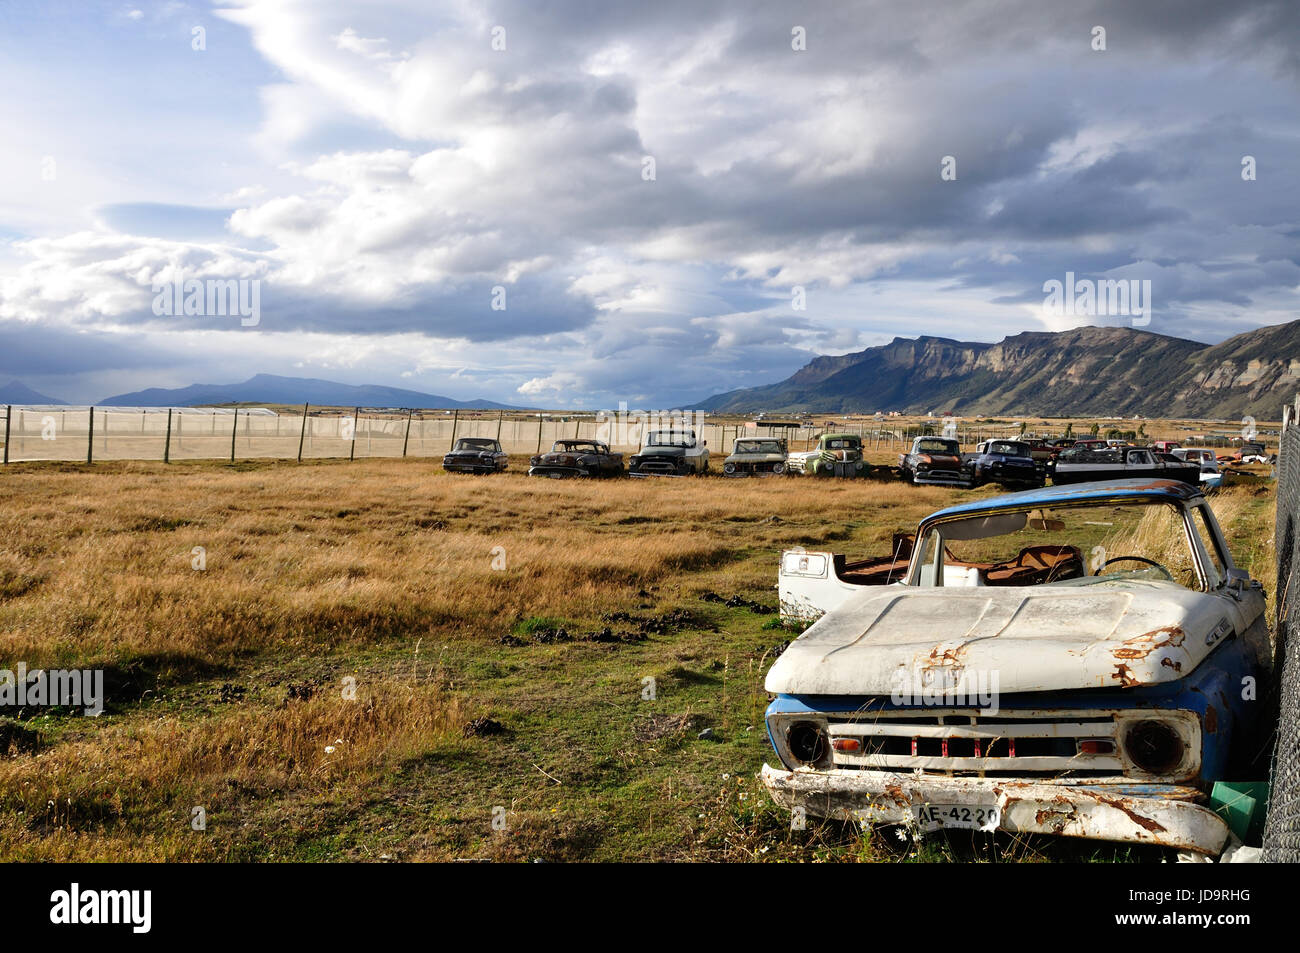 scrap yard or second hand car dealer, Patagonia, Chile, Puerto Natales - Stock Image